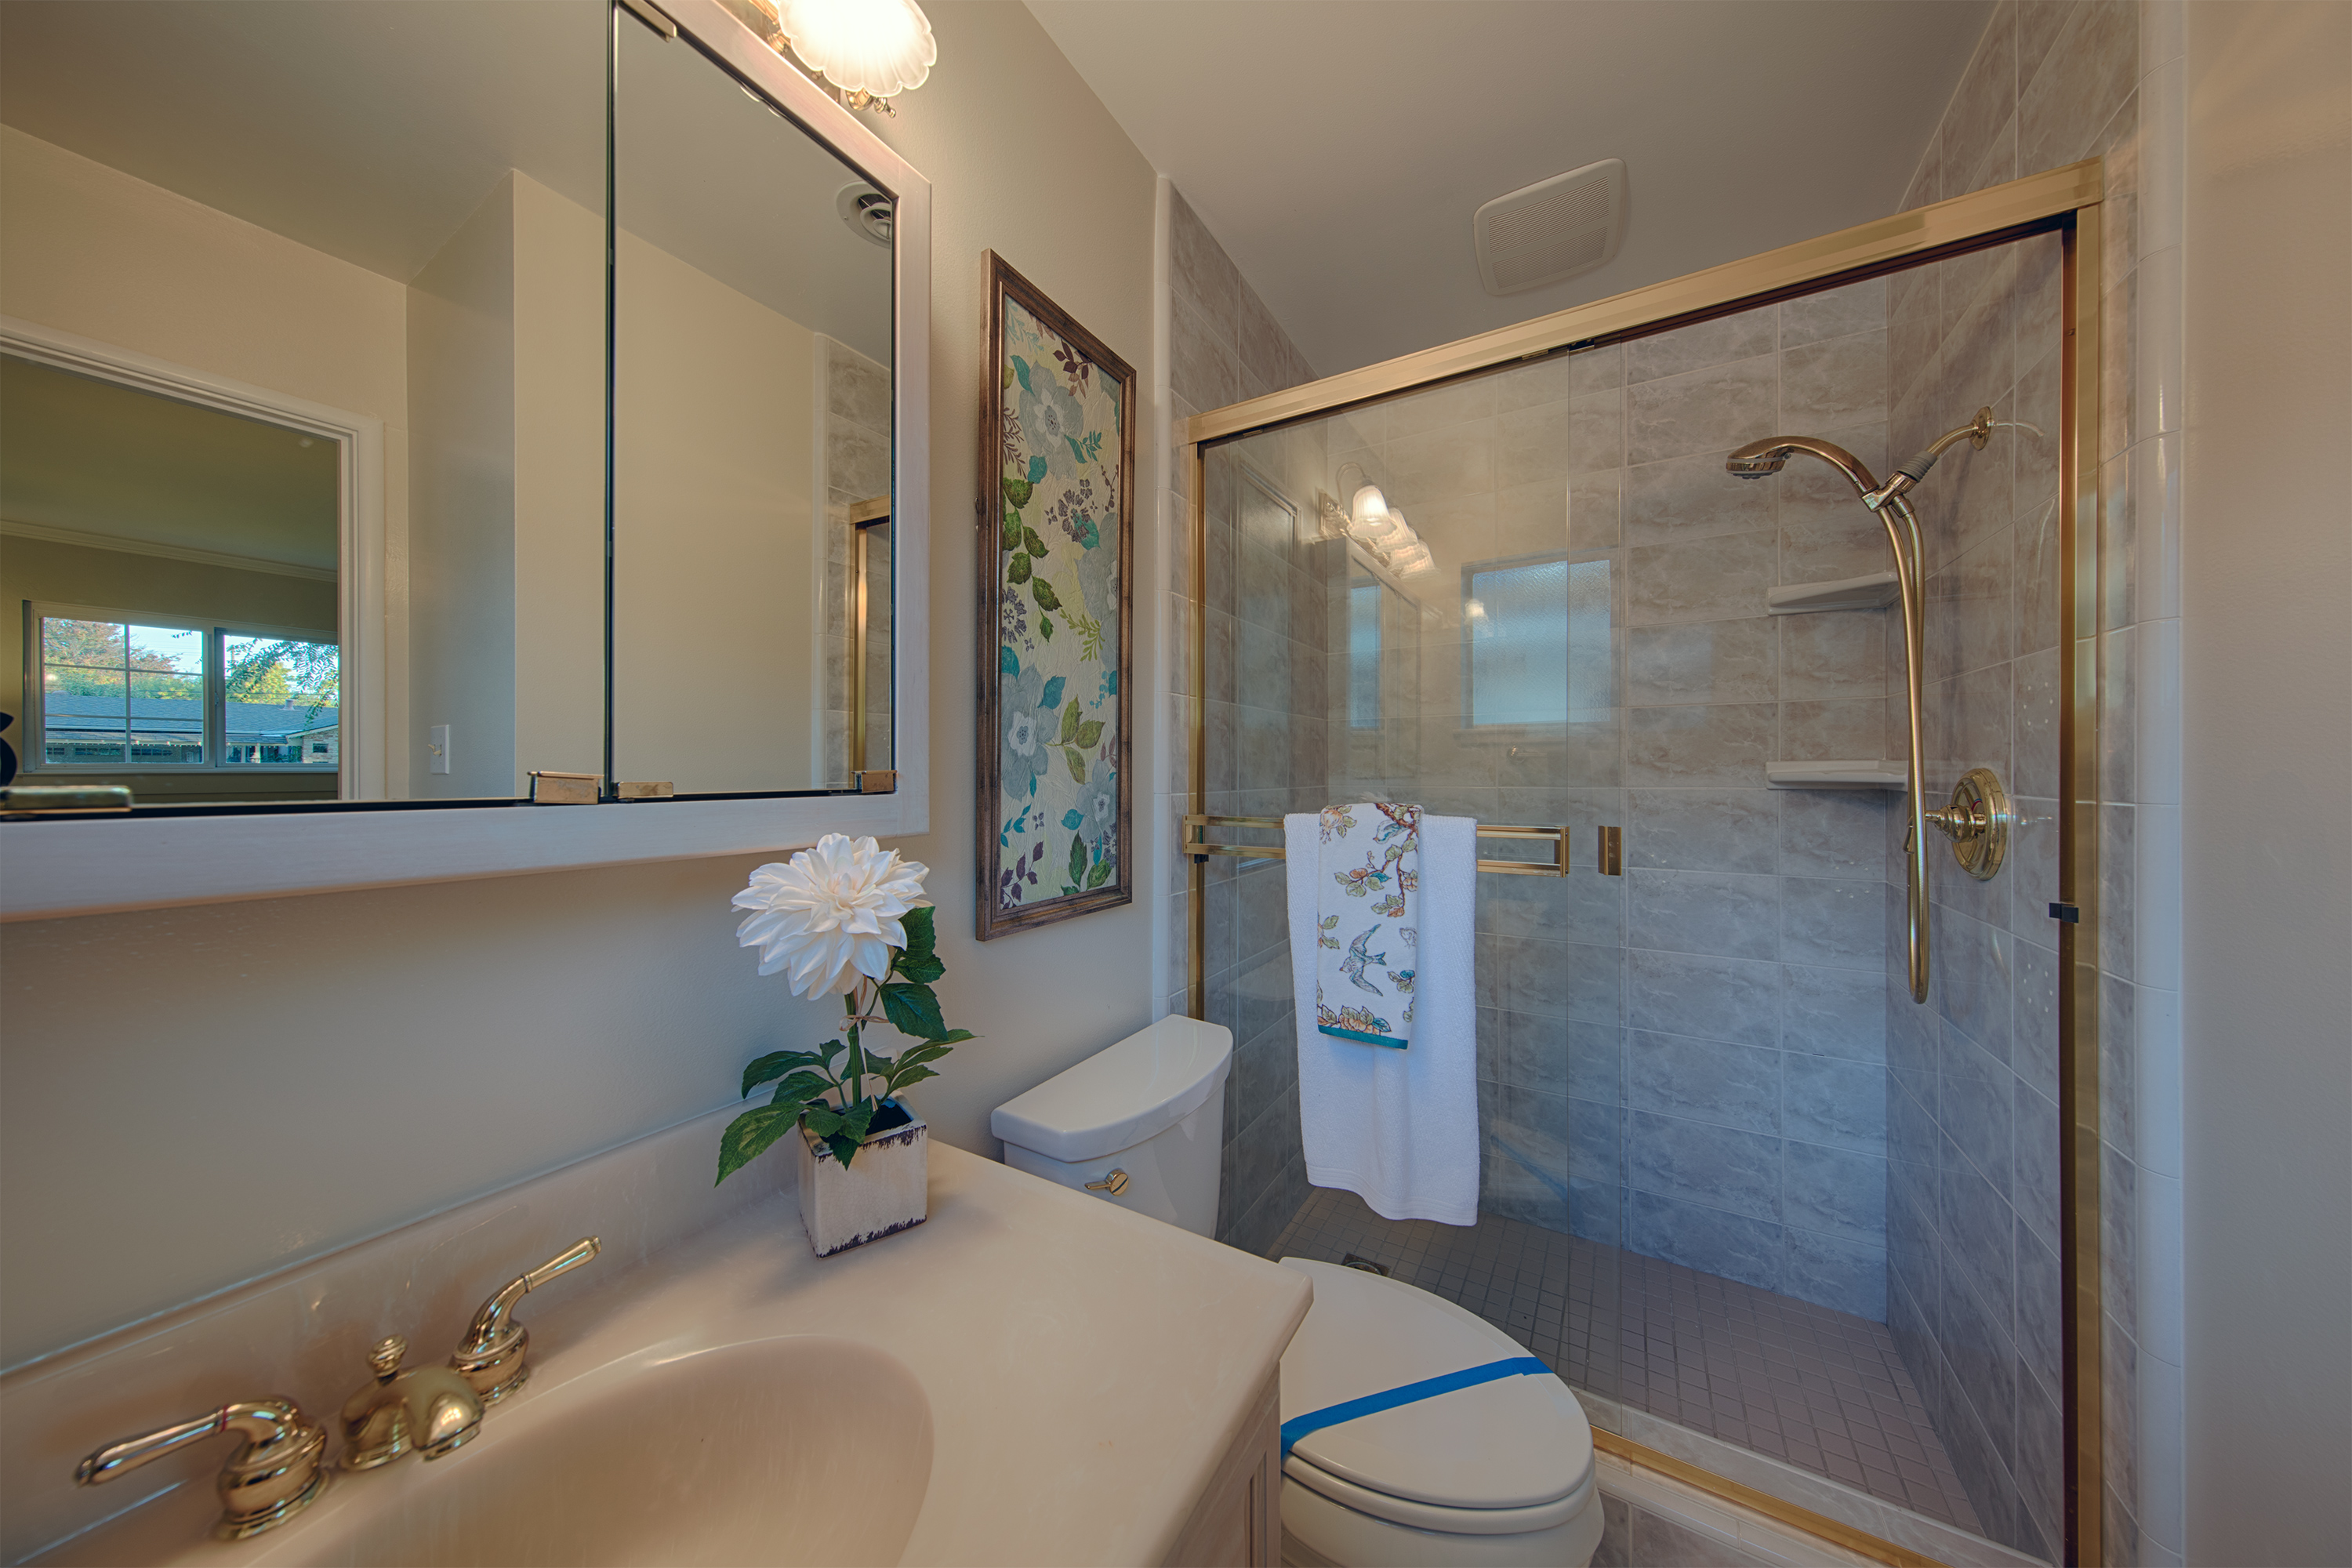 plumbing jose a bathroom office htm s ave baywood virtual san tour estate real